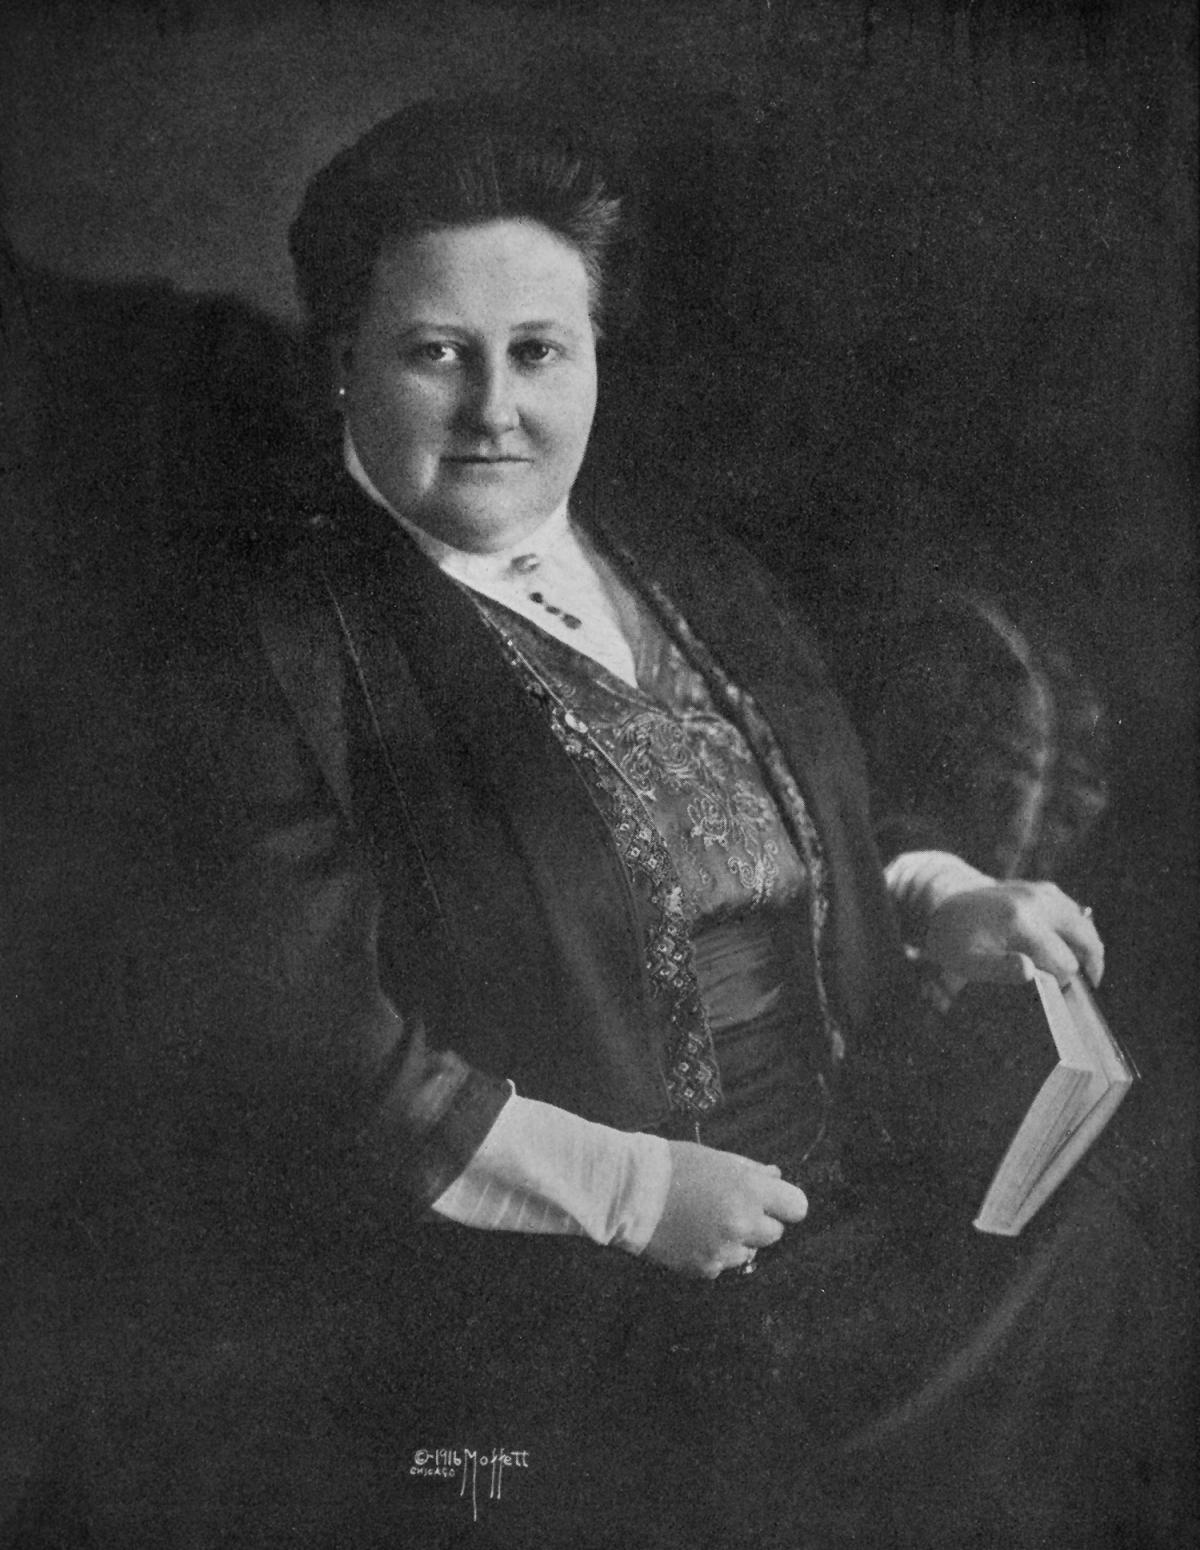 Lowell, wearing a black dress with a high necked white collar, seated